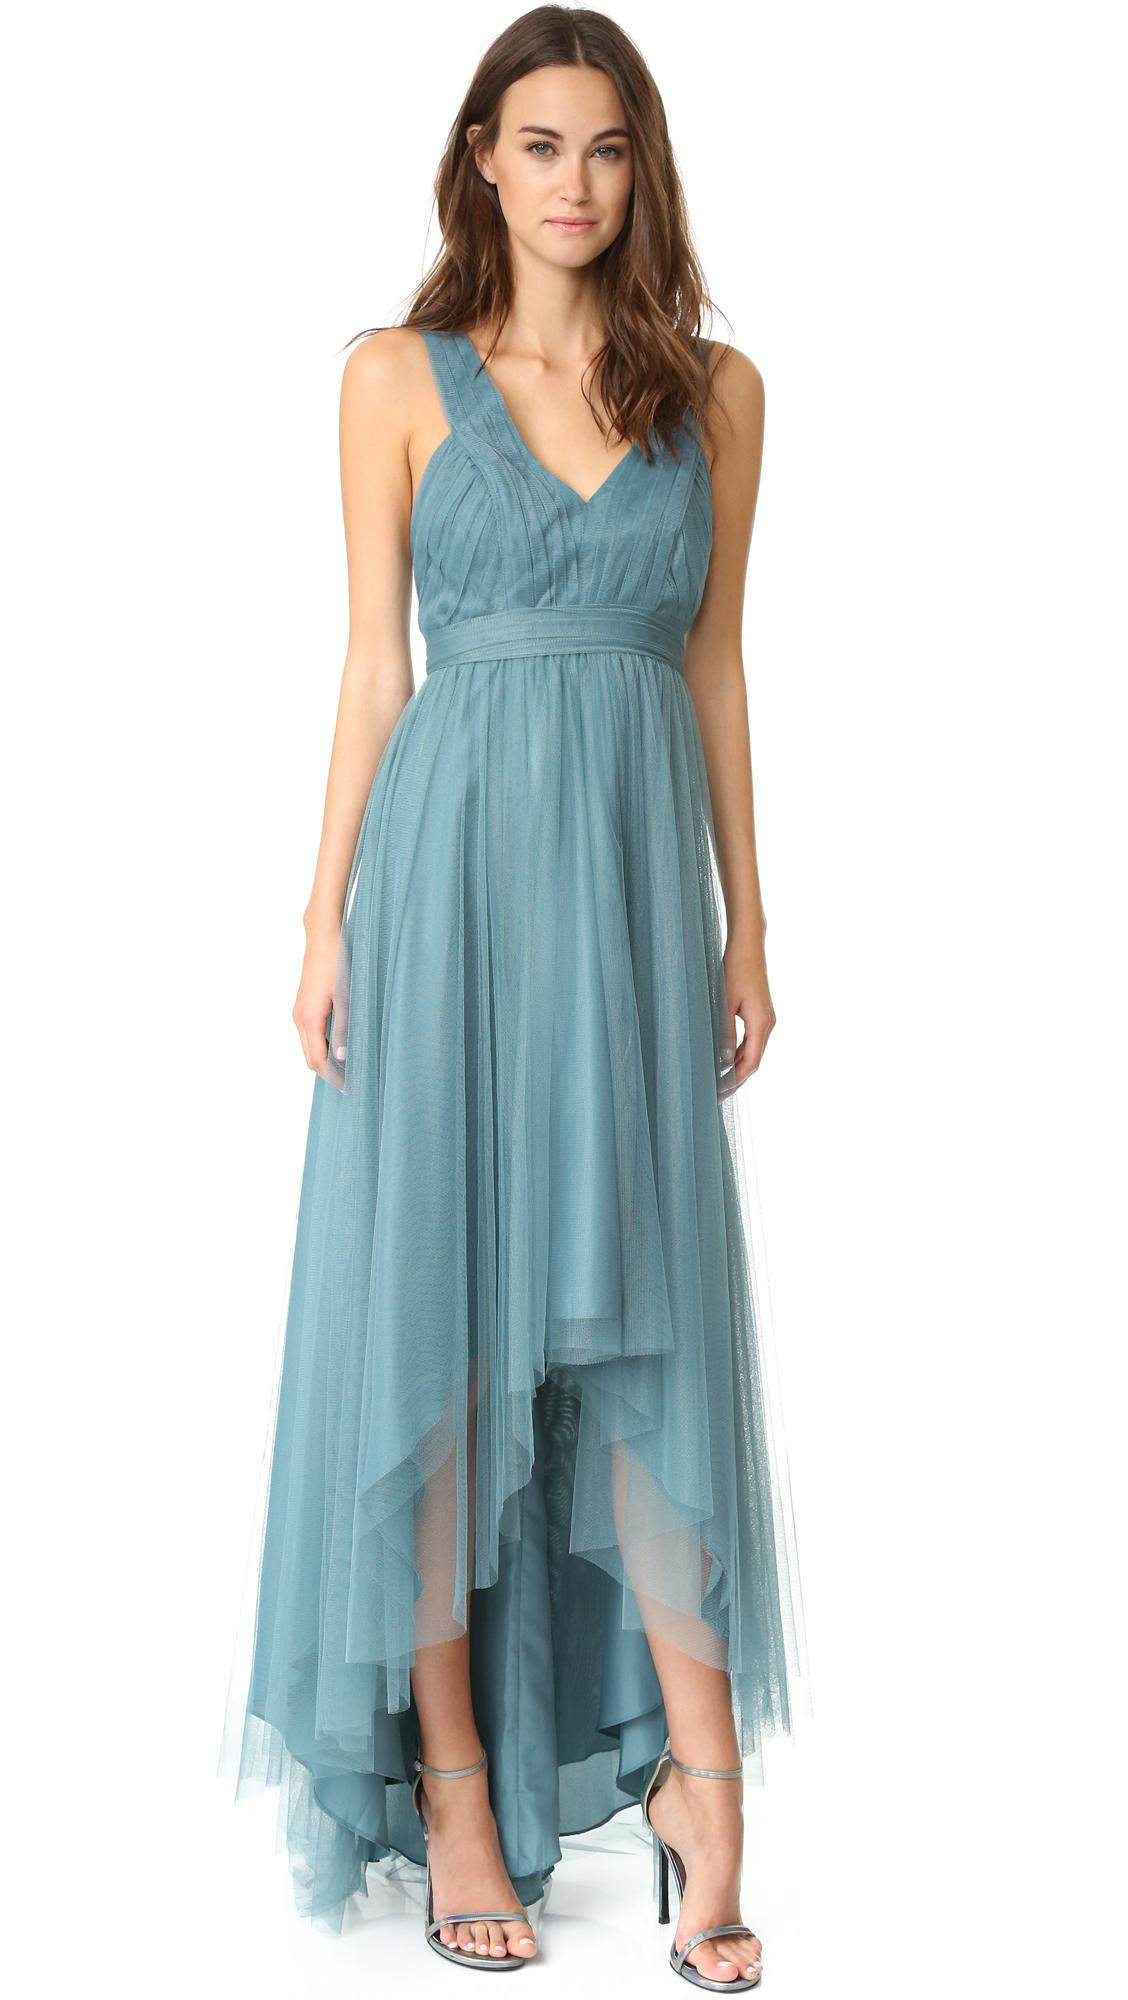 Lyst - Monique Lhuillier Bridesmaids Tulle High Low Gown in Blue